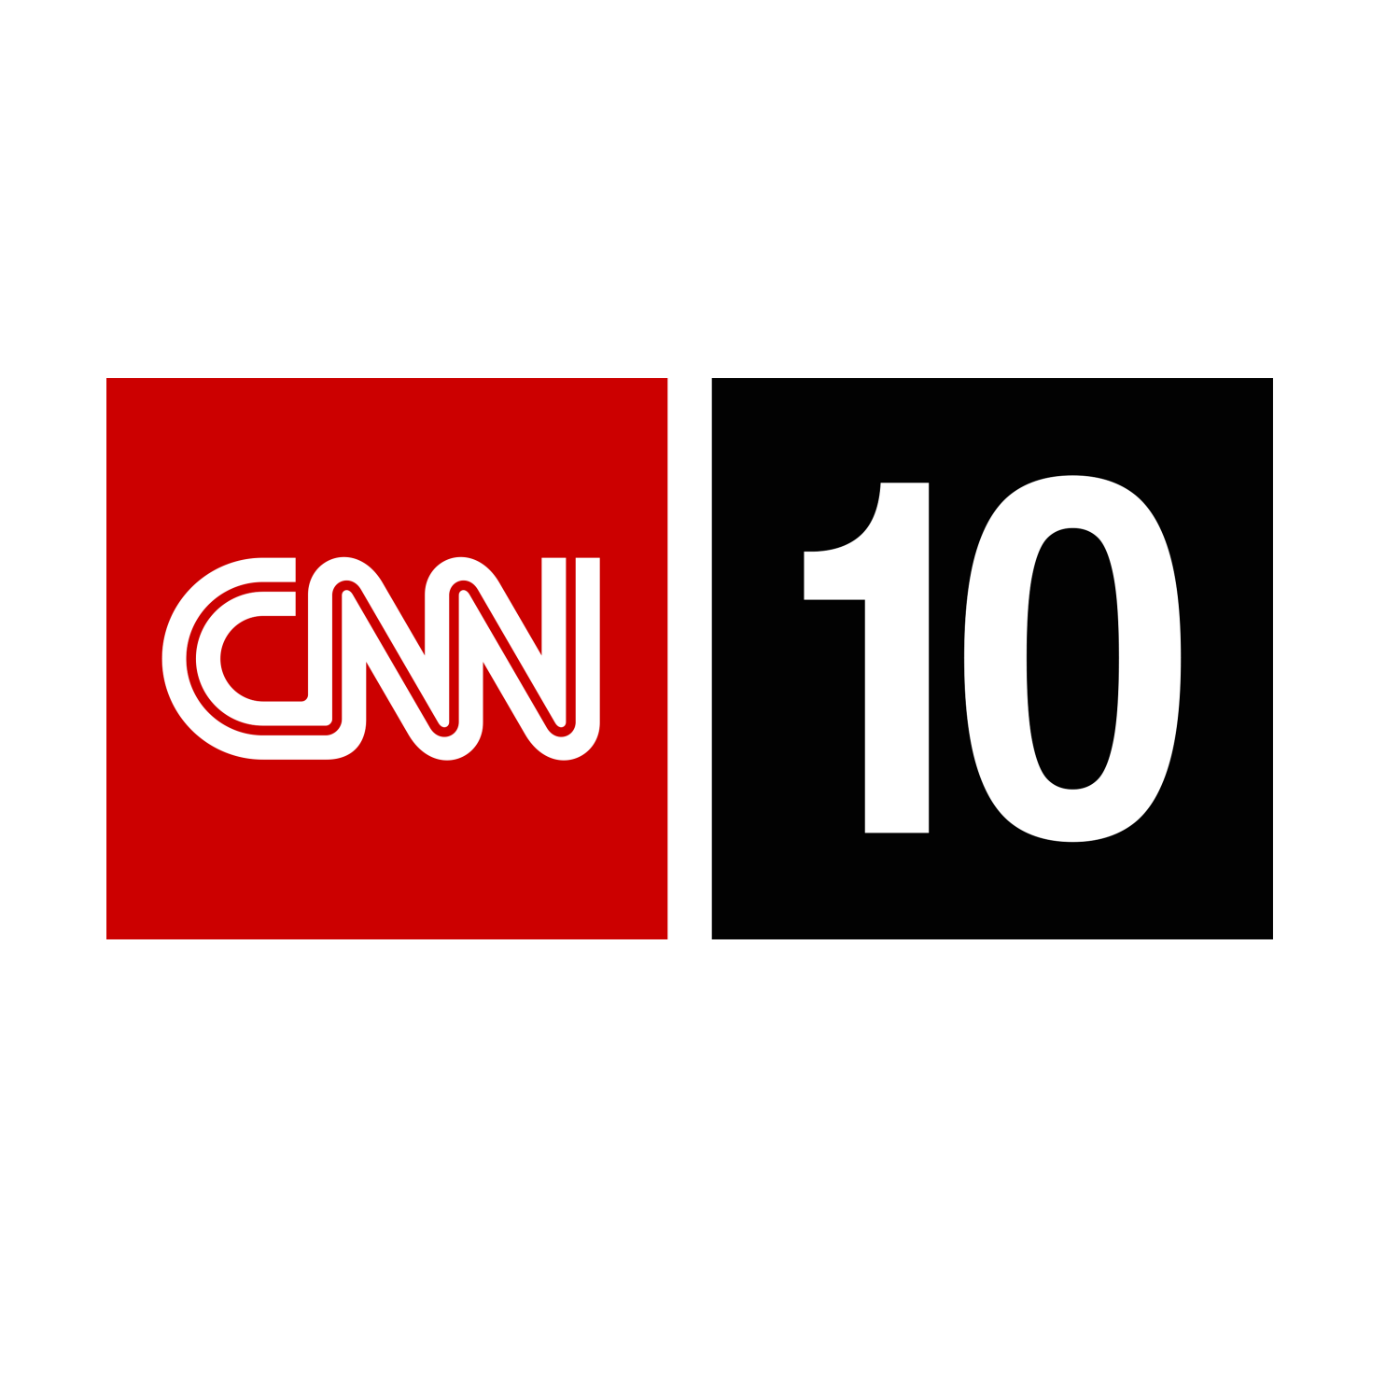 CNN Student News - May 29, 2013